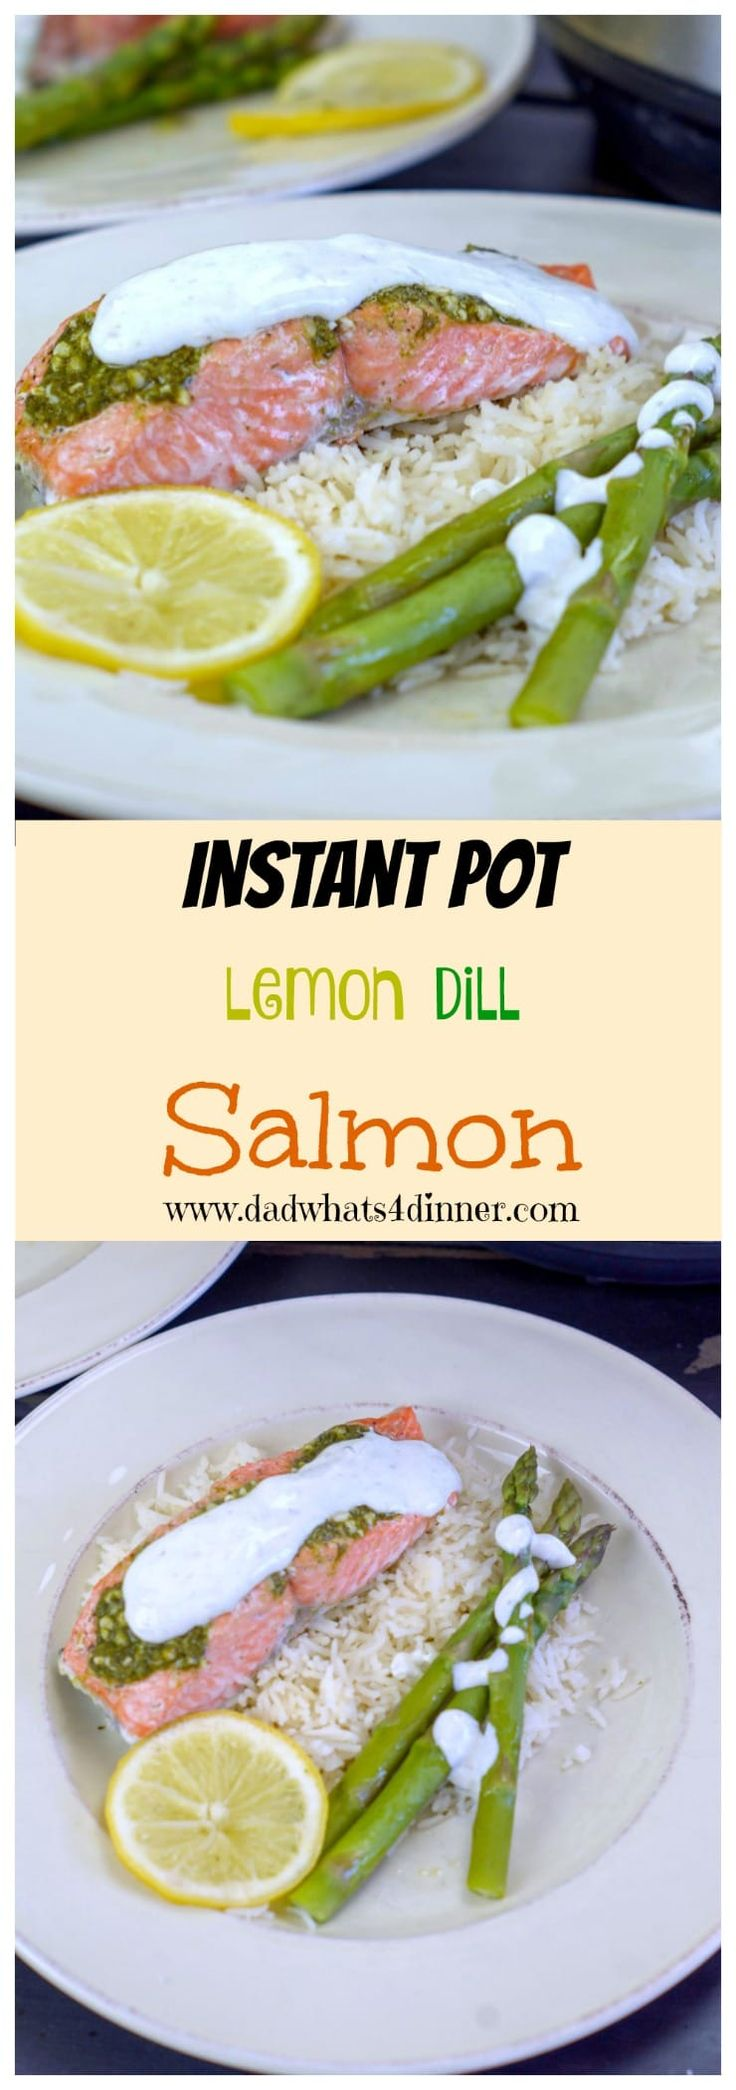 Pinterest image of Instant Pot Lemon Dill Salmon from www.dadwhats4dinner.com @MyDorot #Ad #ElevateYourPlate #InstantPot #salmon #Dill #Healthy #lowfat via @dadwhats4dinner